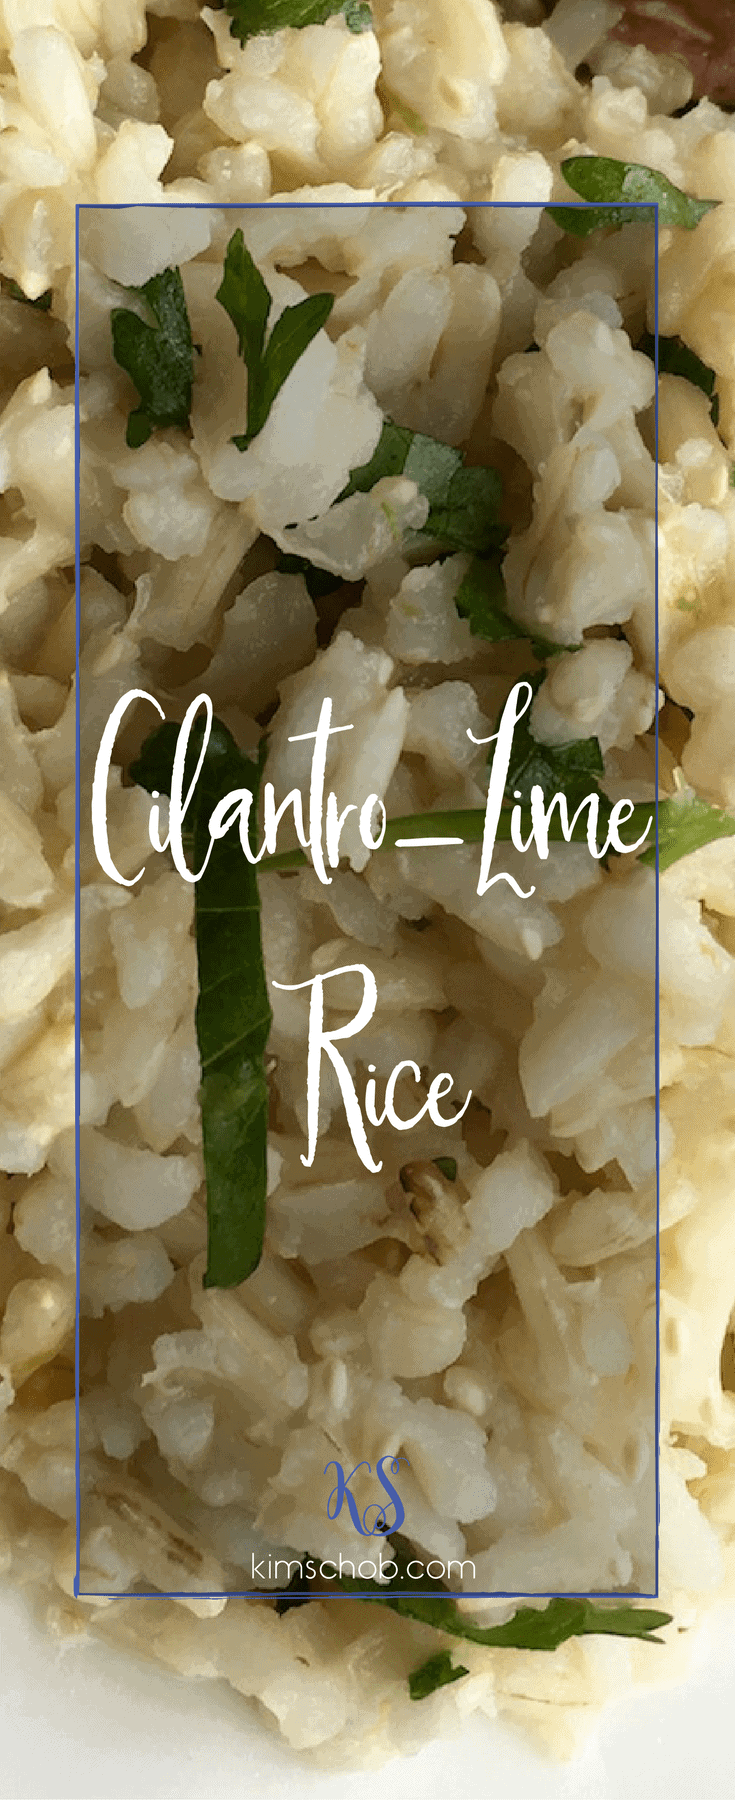 Cilantro-Lime Rice | The way Lime and cilantro are paired to create a classic flavor combination that brings added depth to your dishes | kimschob.com